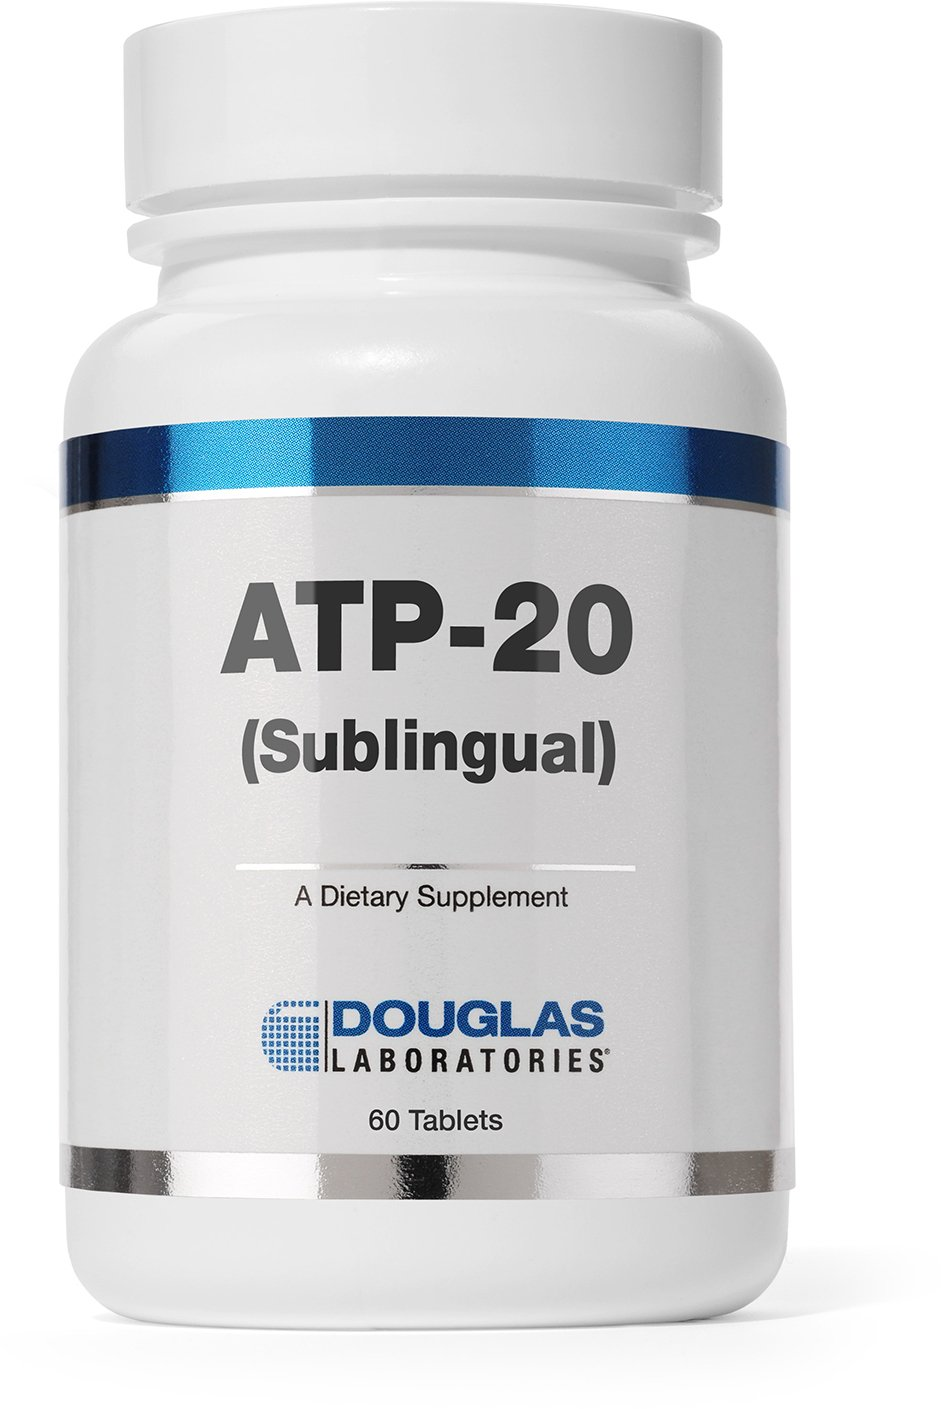 Douglas Laboratories® - ATP-20 (Sublingual) - Adenosine Triphosphate Dissolvable Tablet for Cellular Energy Support* - 60 Tablets